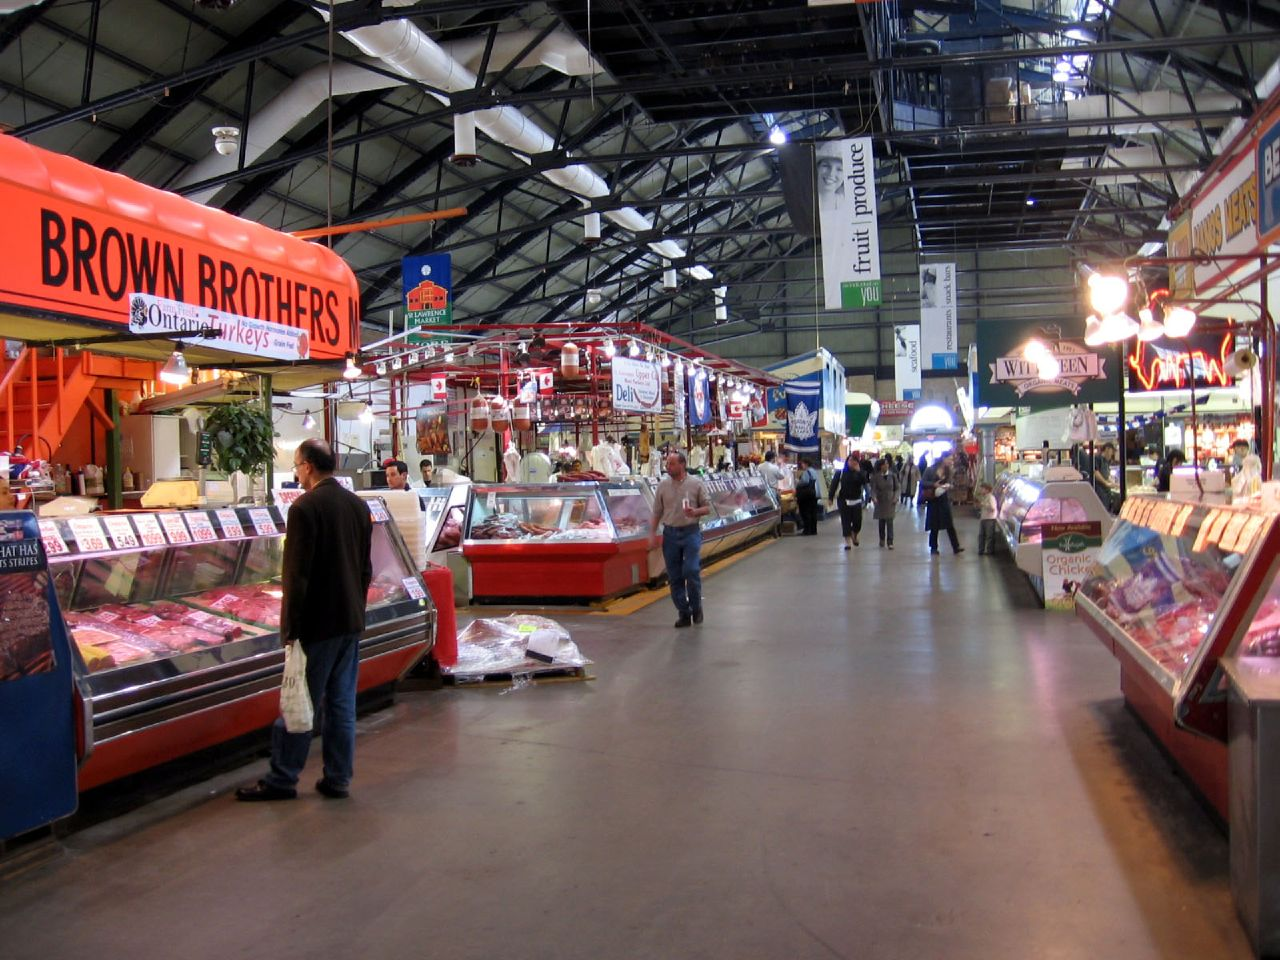 Stalls and people shopping at market.